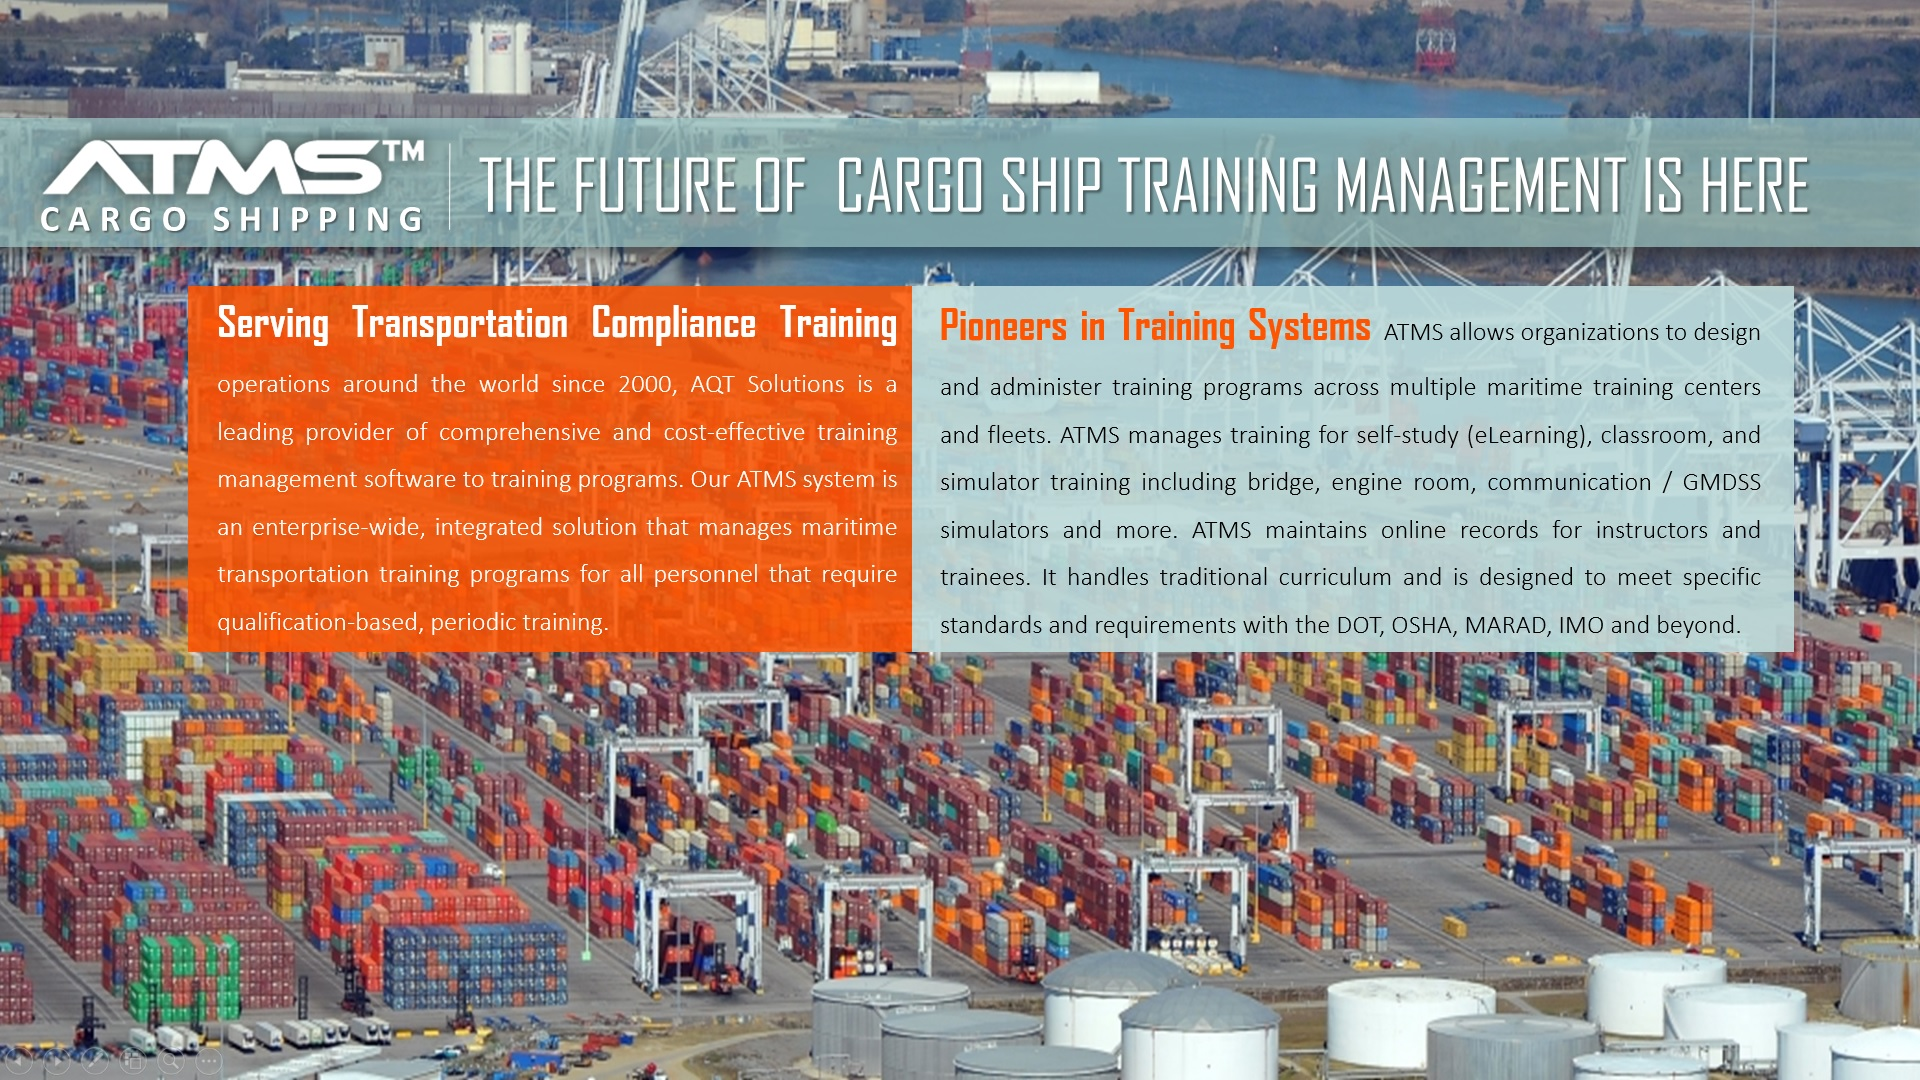 Cargo-Ship-Training-Systems-Slide-2